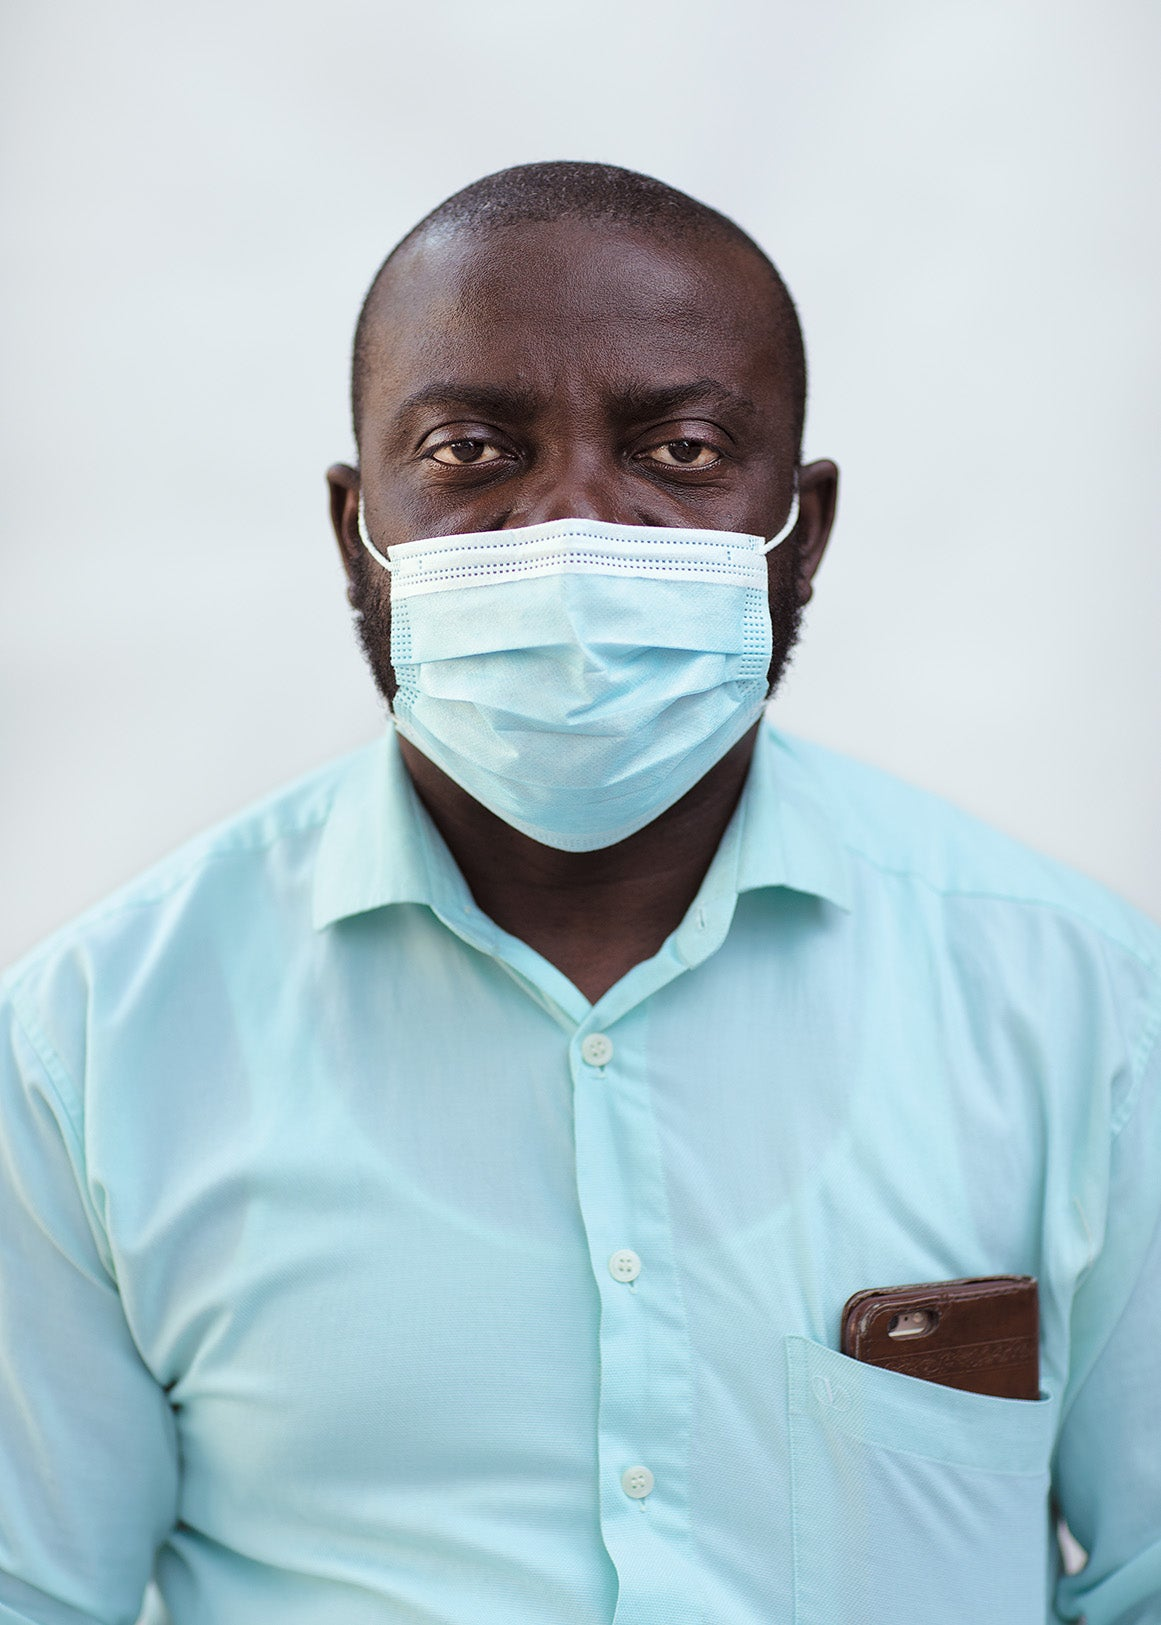 Alex Appiah Frimpong wears a blue shirt and face mask.